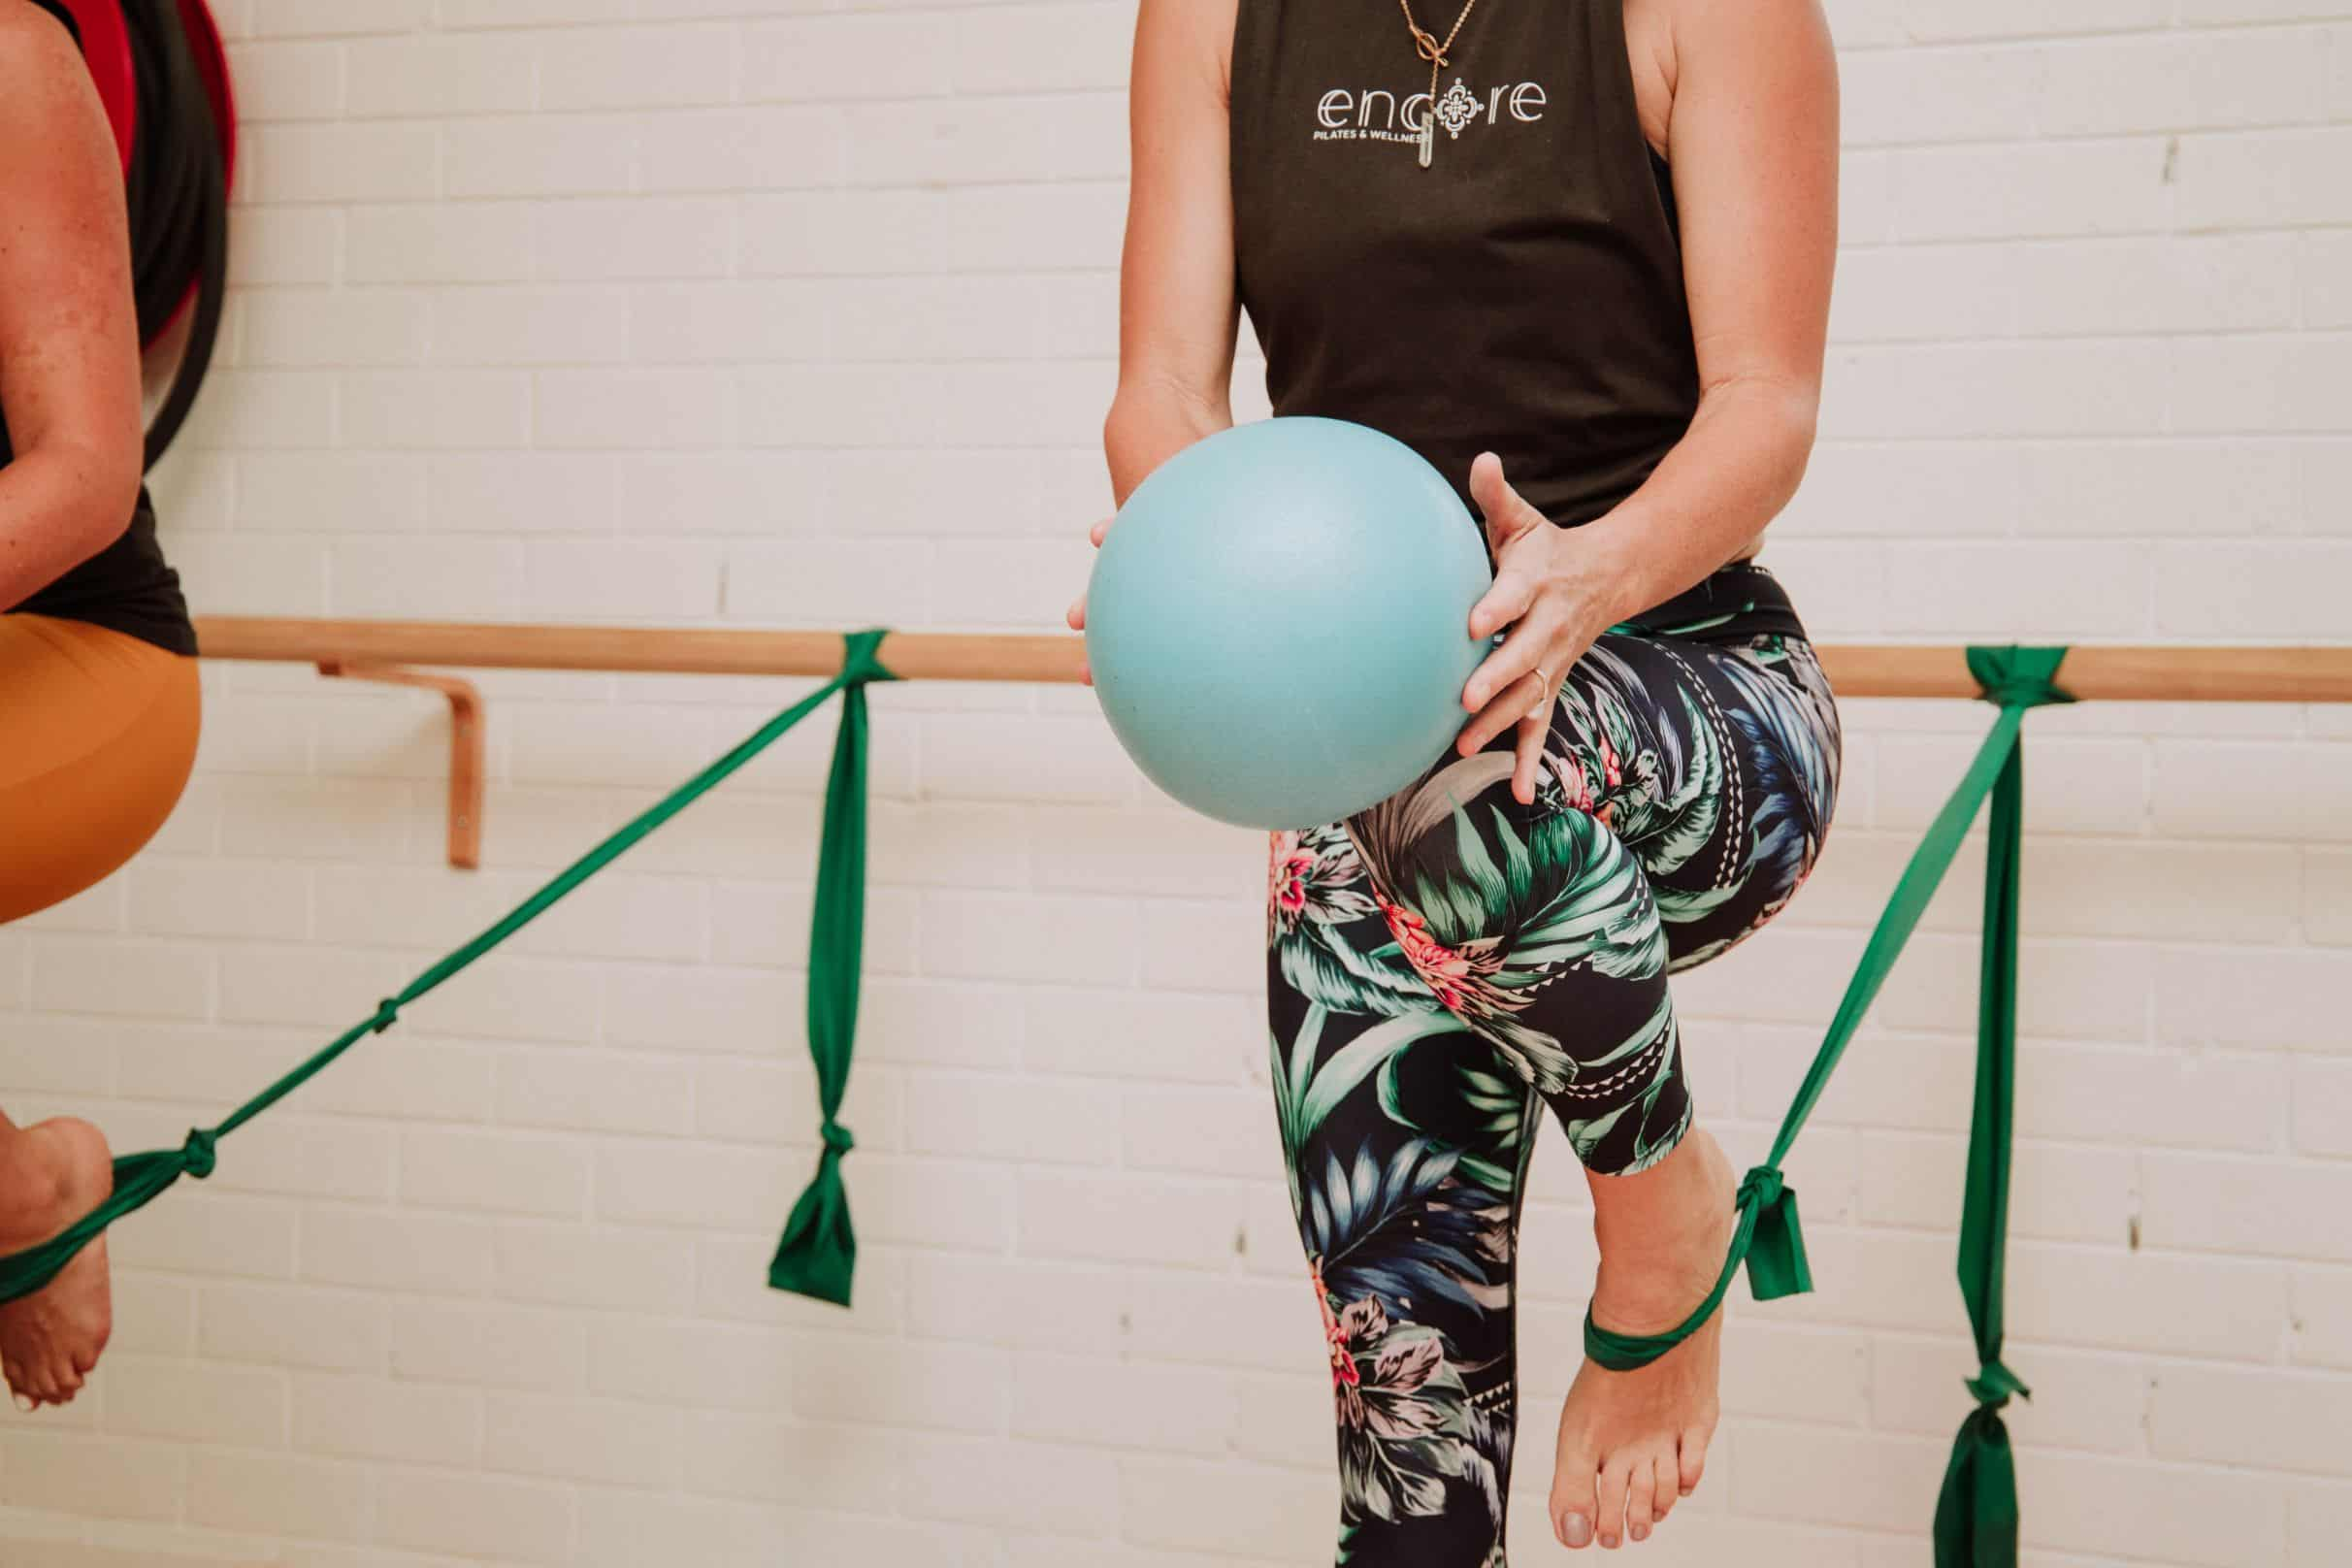 exercising with intention